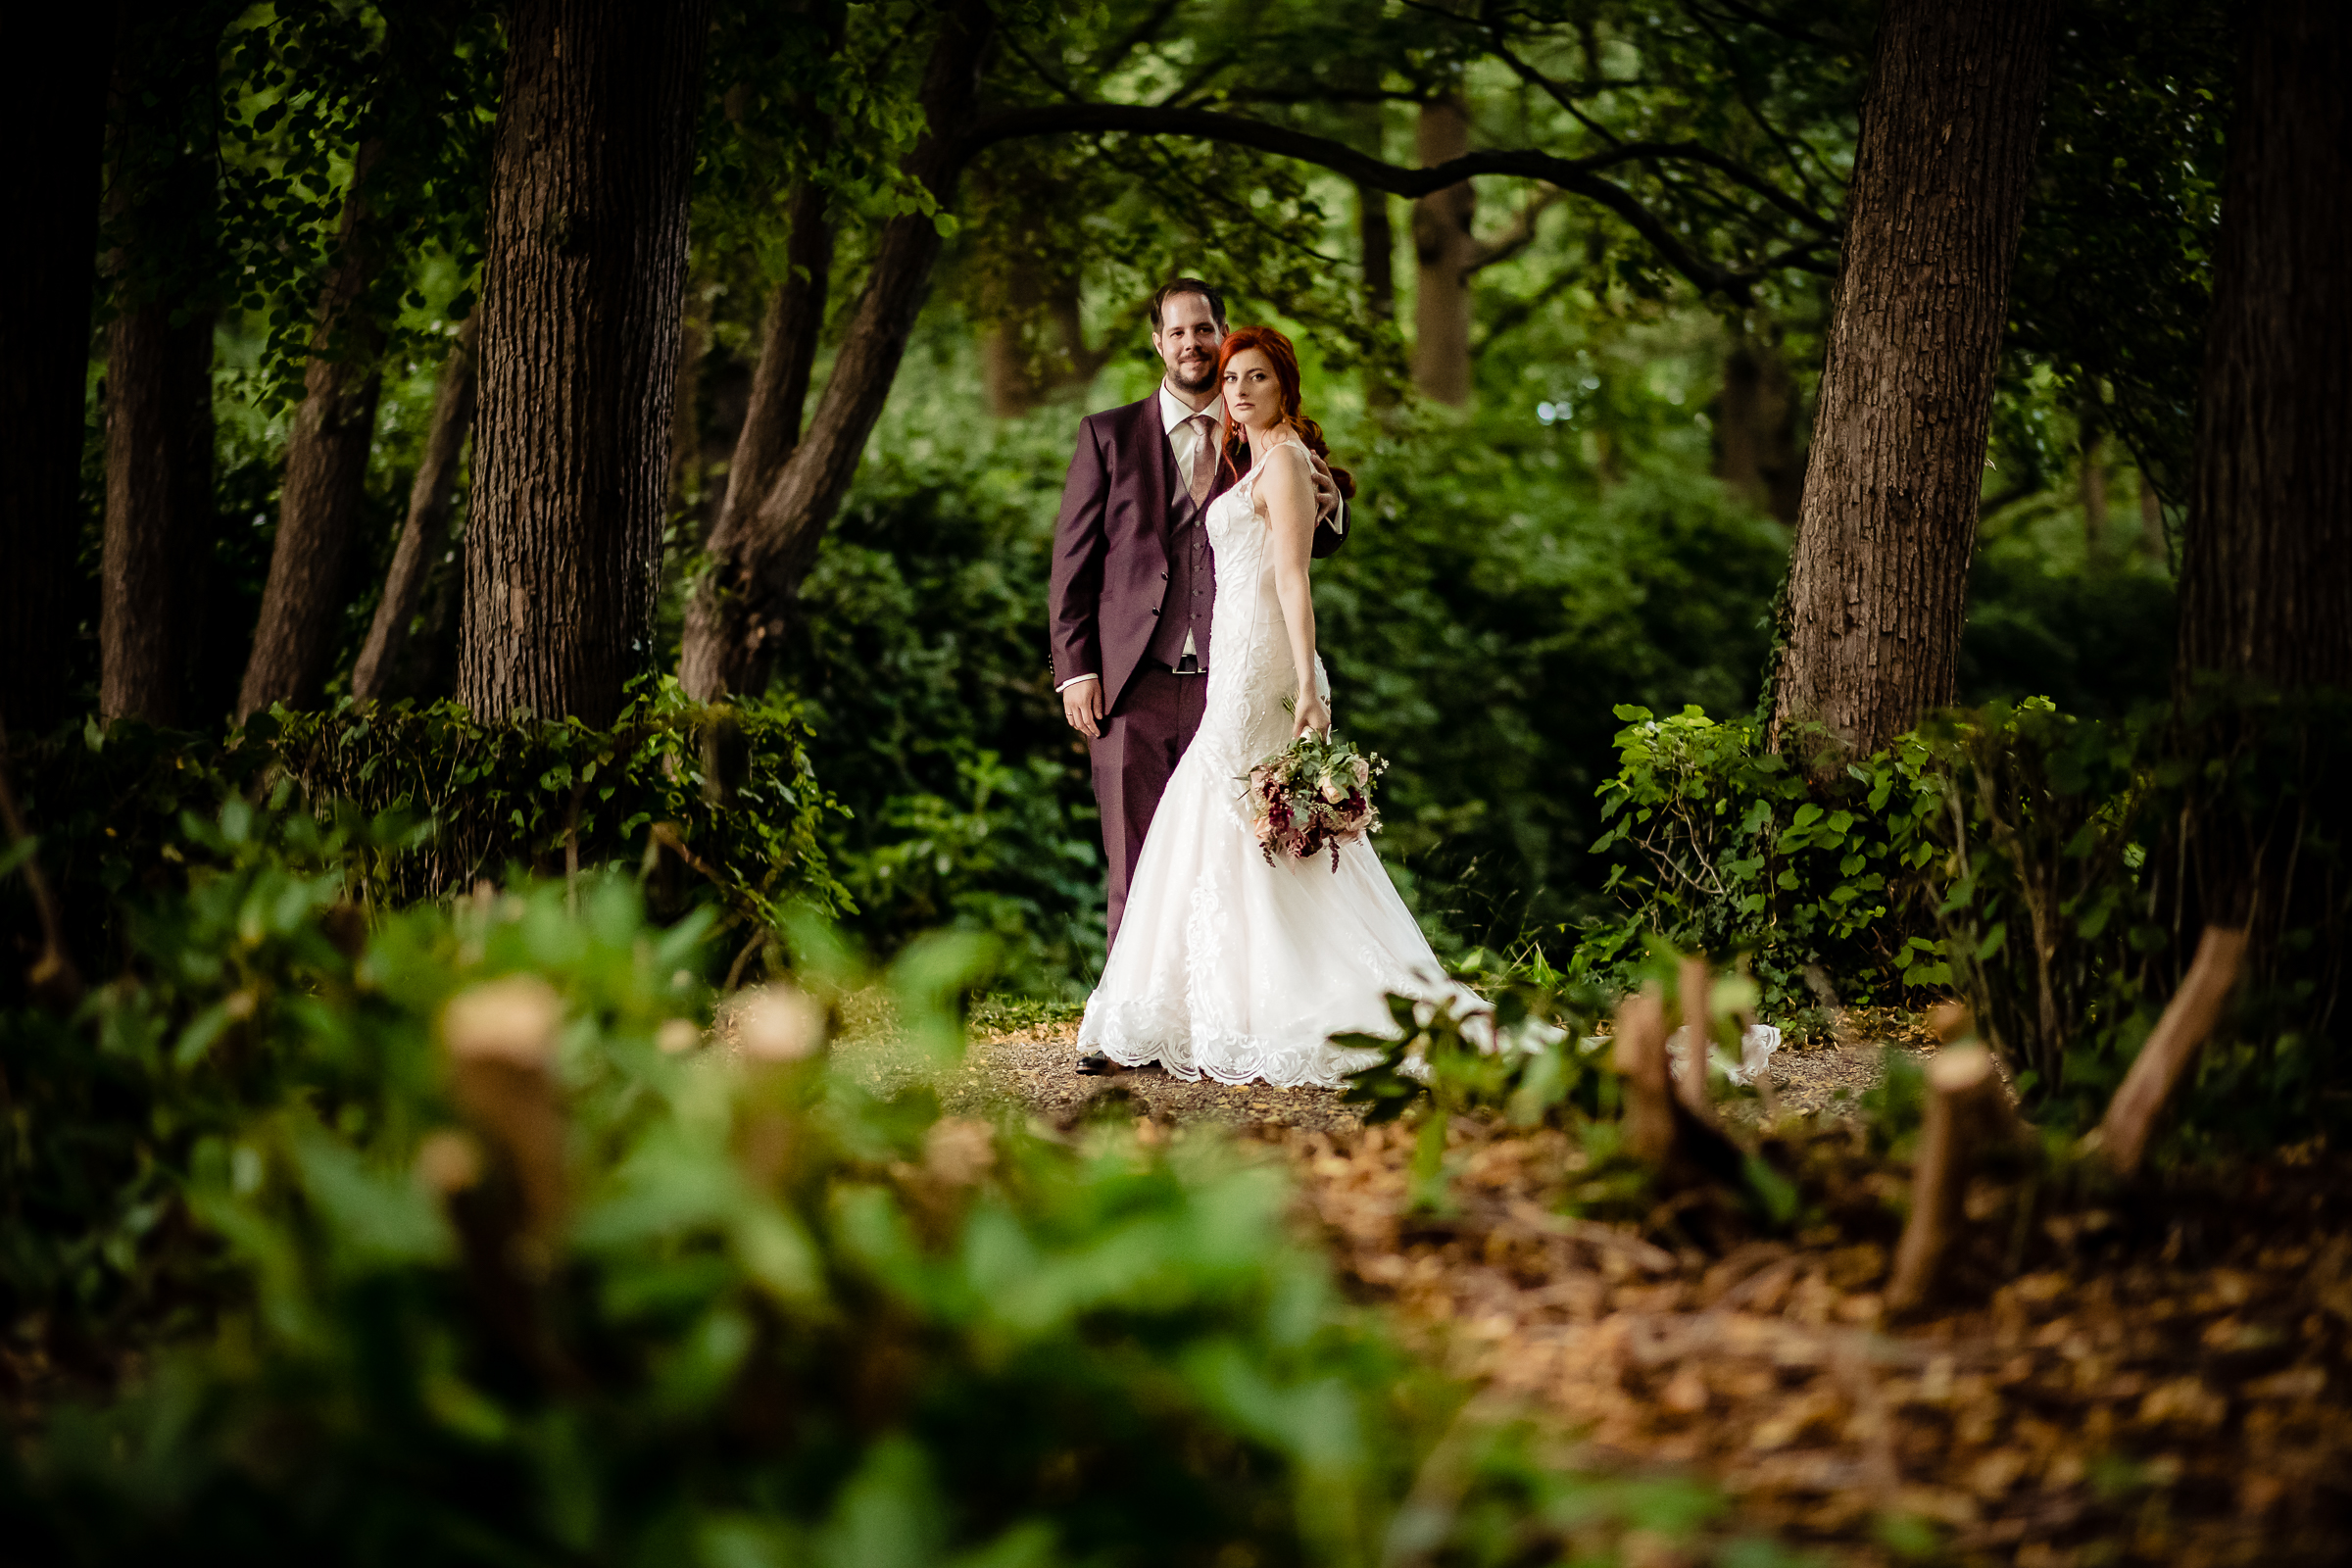 Classic portrait of couple standing in forest grove - photo by Eppel Photography